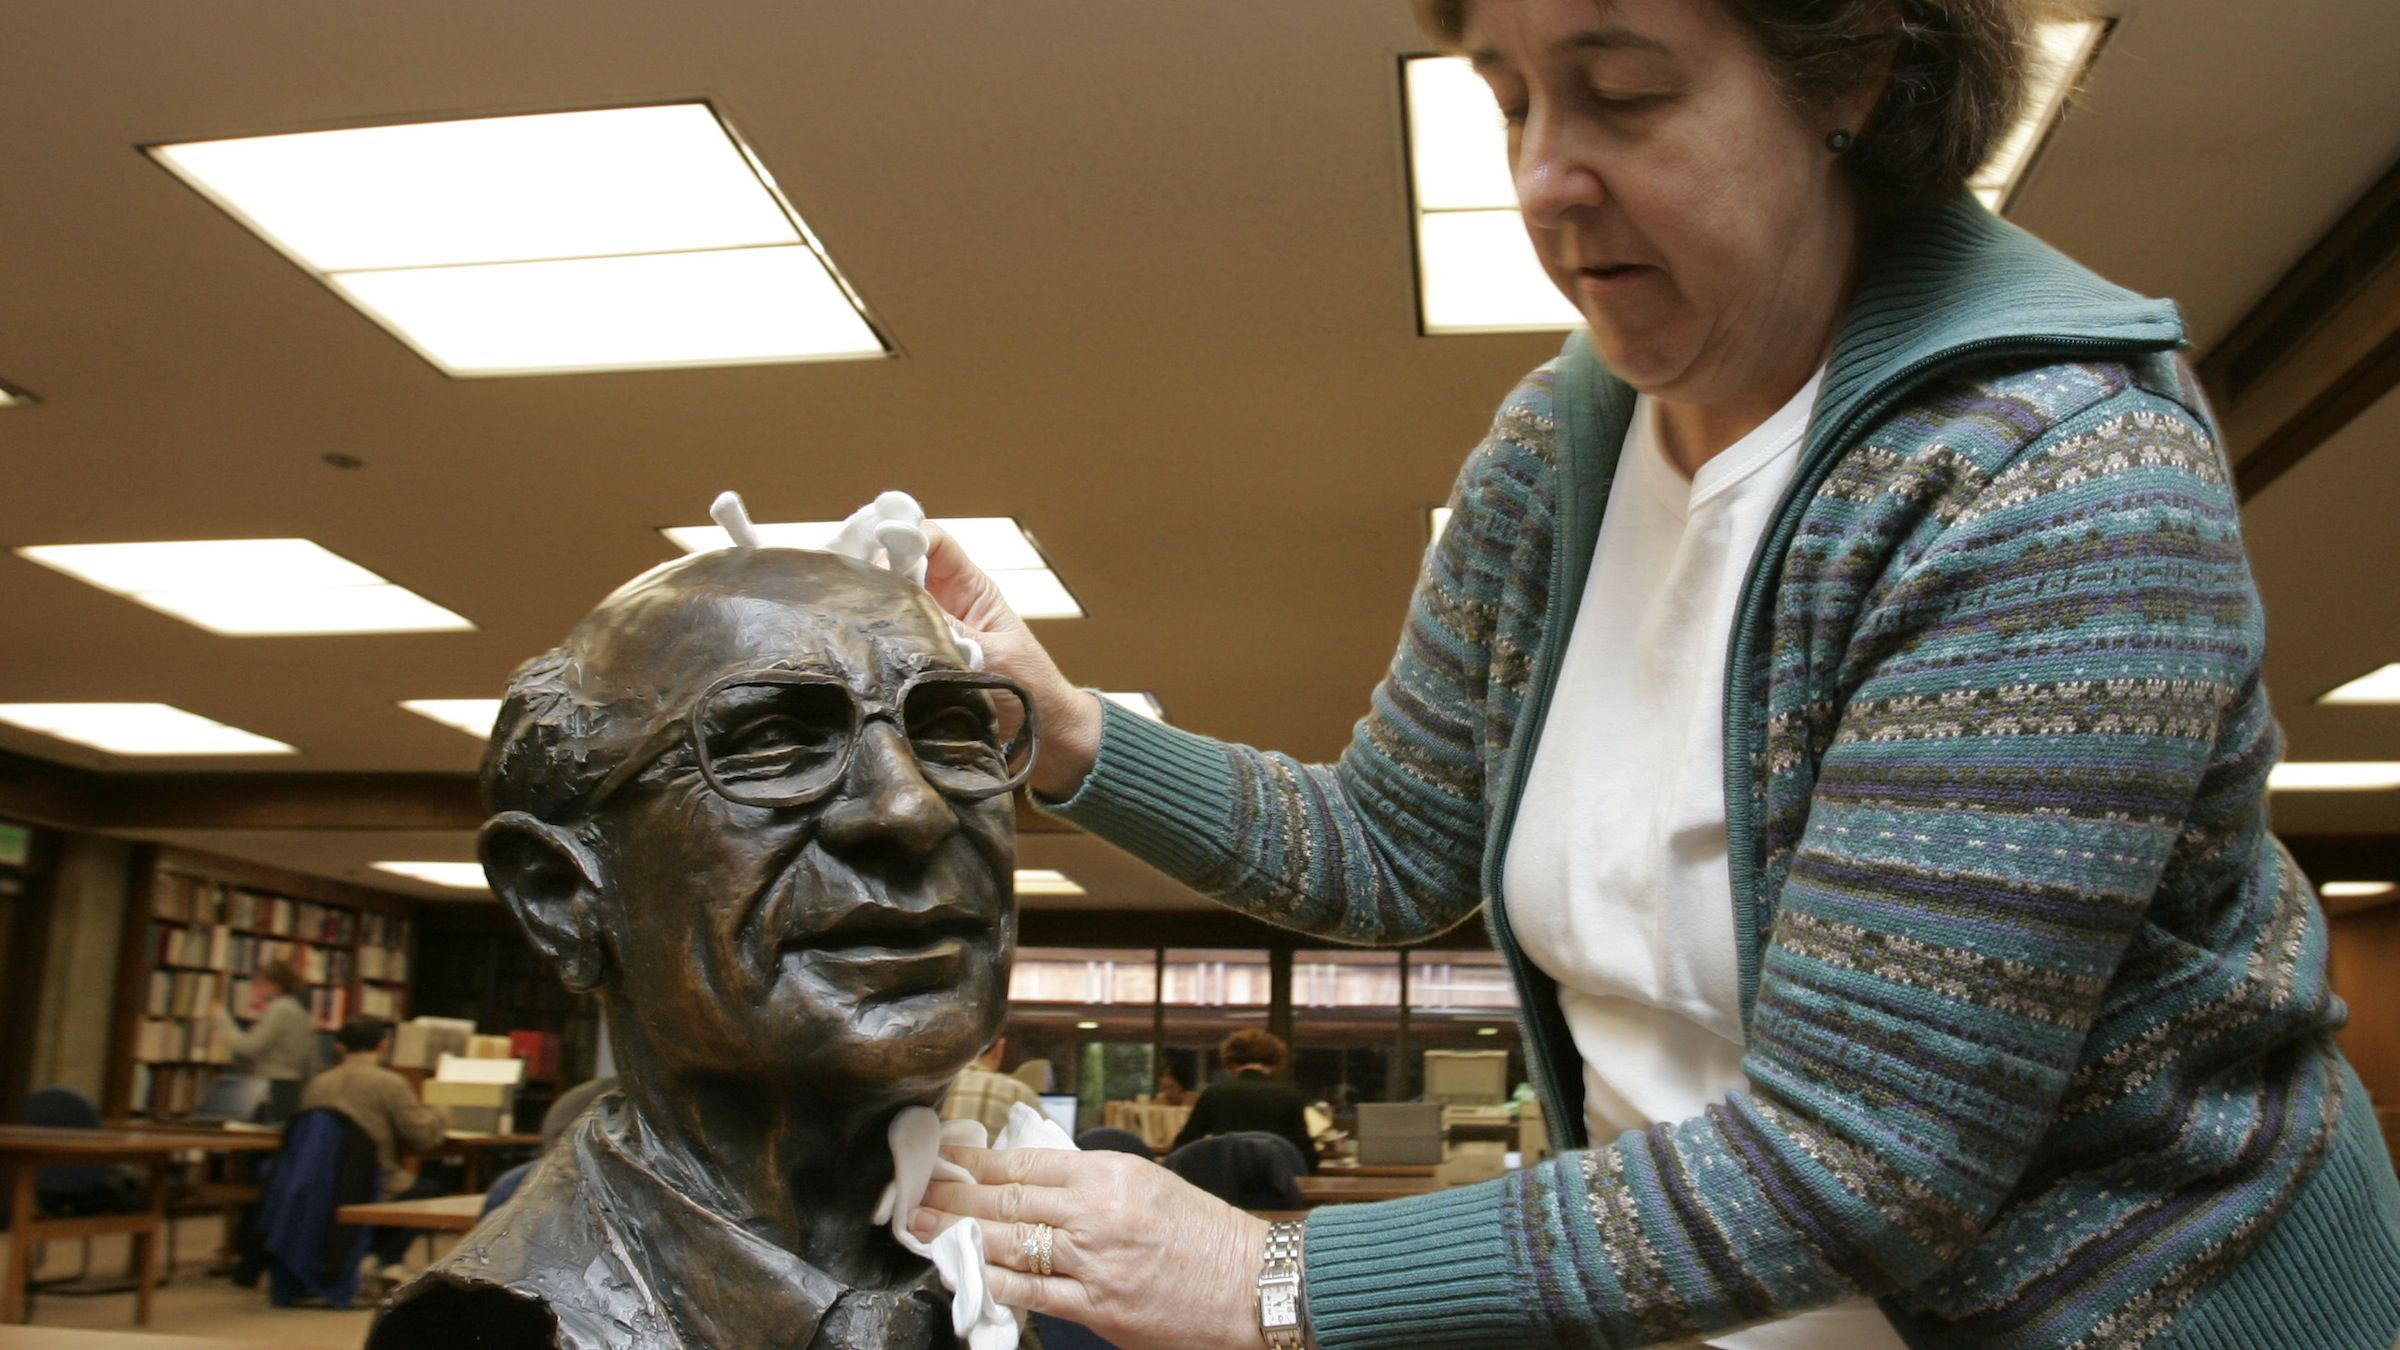 Carol Leadenham, an archivist for the Hoover Institute on the Stanford University campus, cleans the bust of  Milton Friedman, the Nobel Prize-winning economist who advocated an unfettered free market and had the ear of three U.S. presidents, on display in a reading room in Stanford, Calif., Thursday, Nov. 16, 2006. Friedman died in San Francisco, Thursday, Nov. 16, 2006 at age 94. (AP Photo/Paul Sakuma)